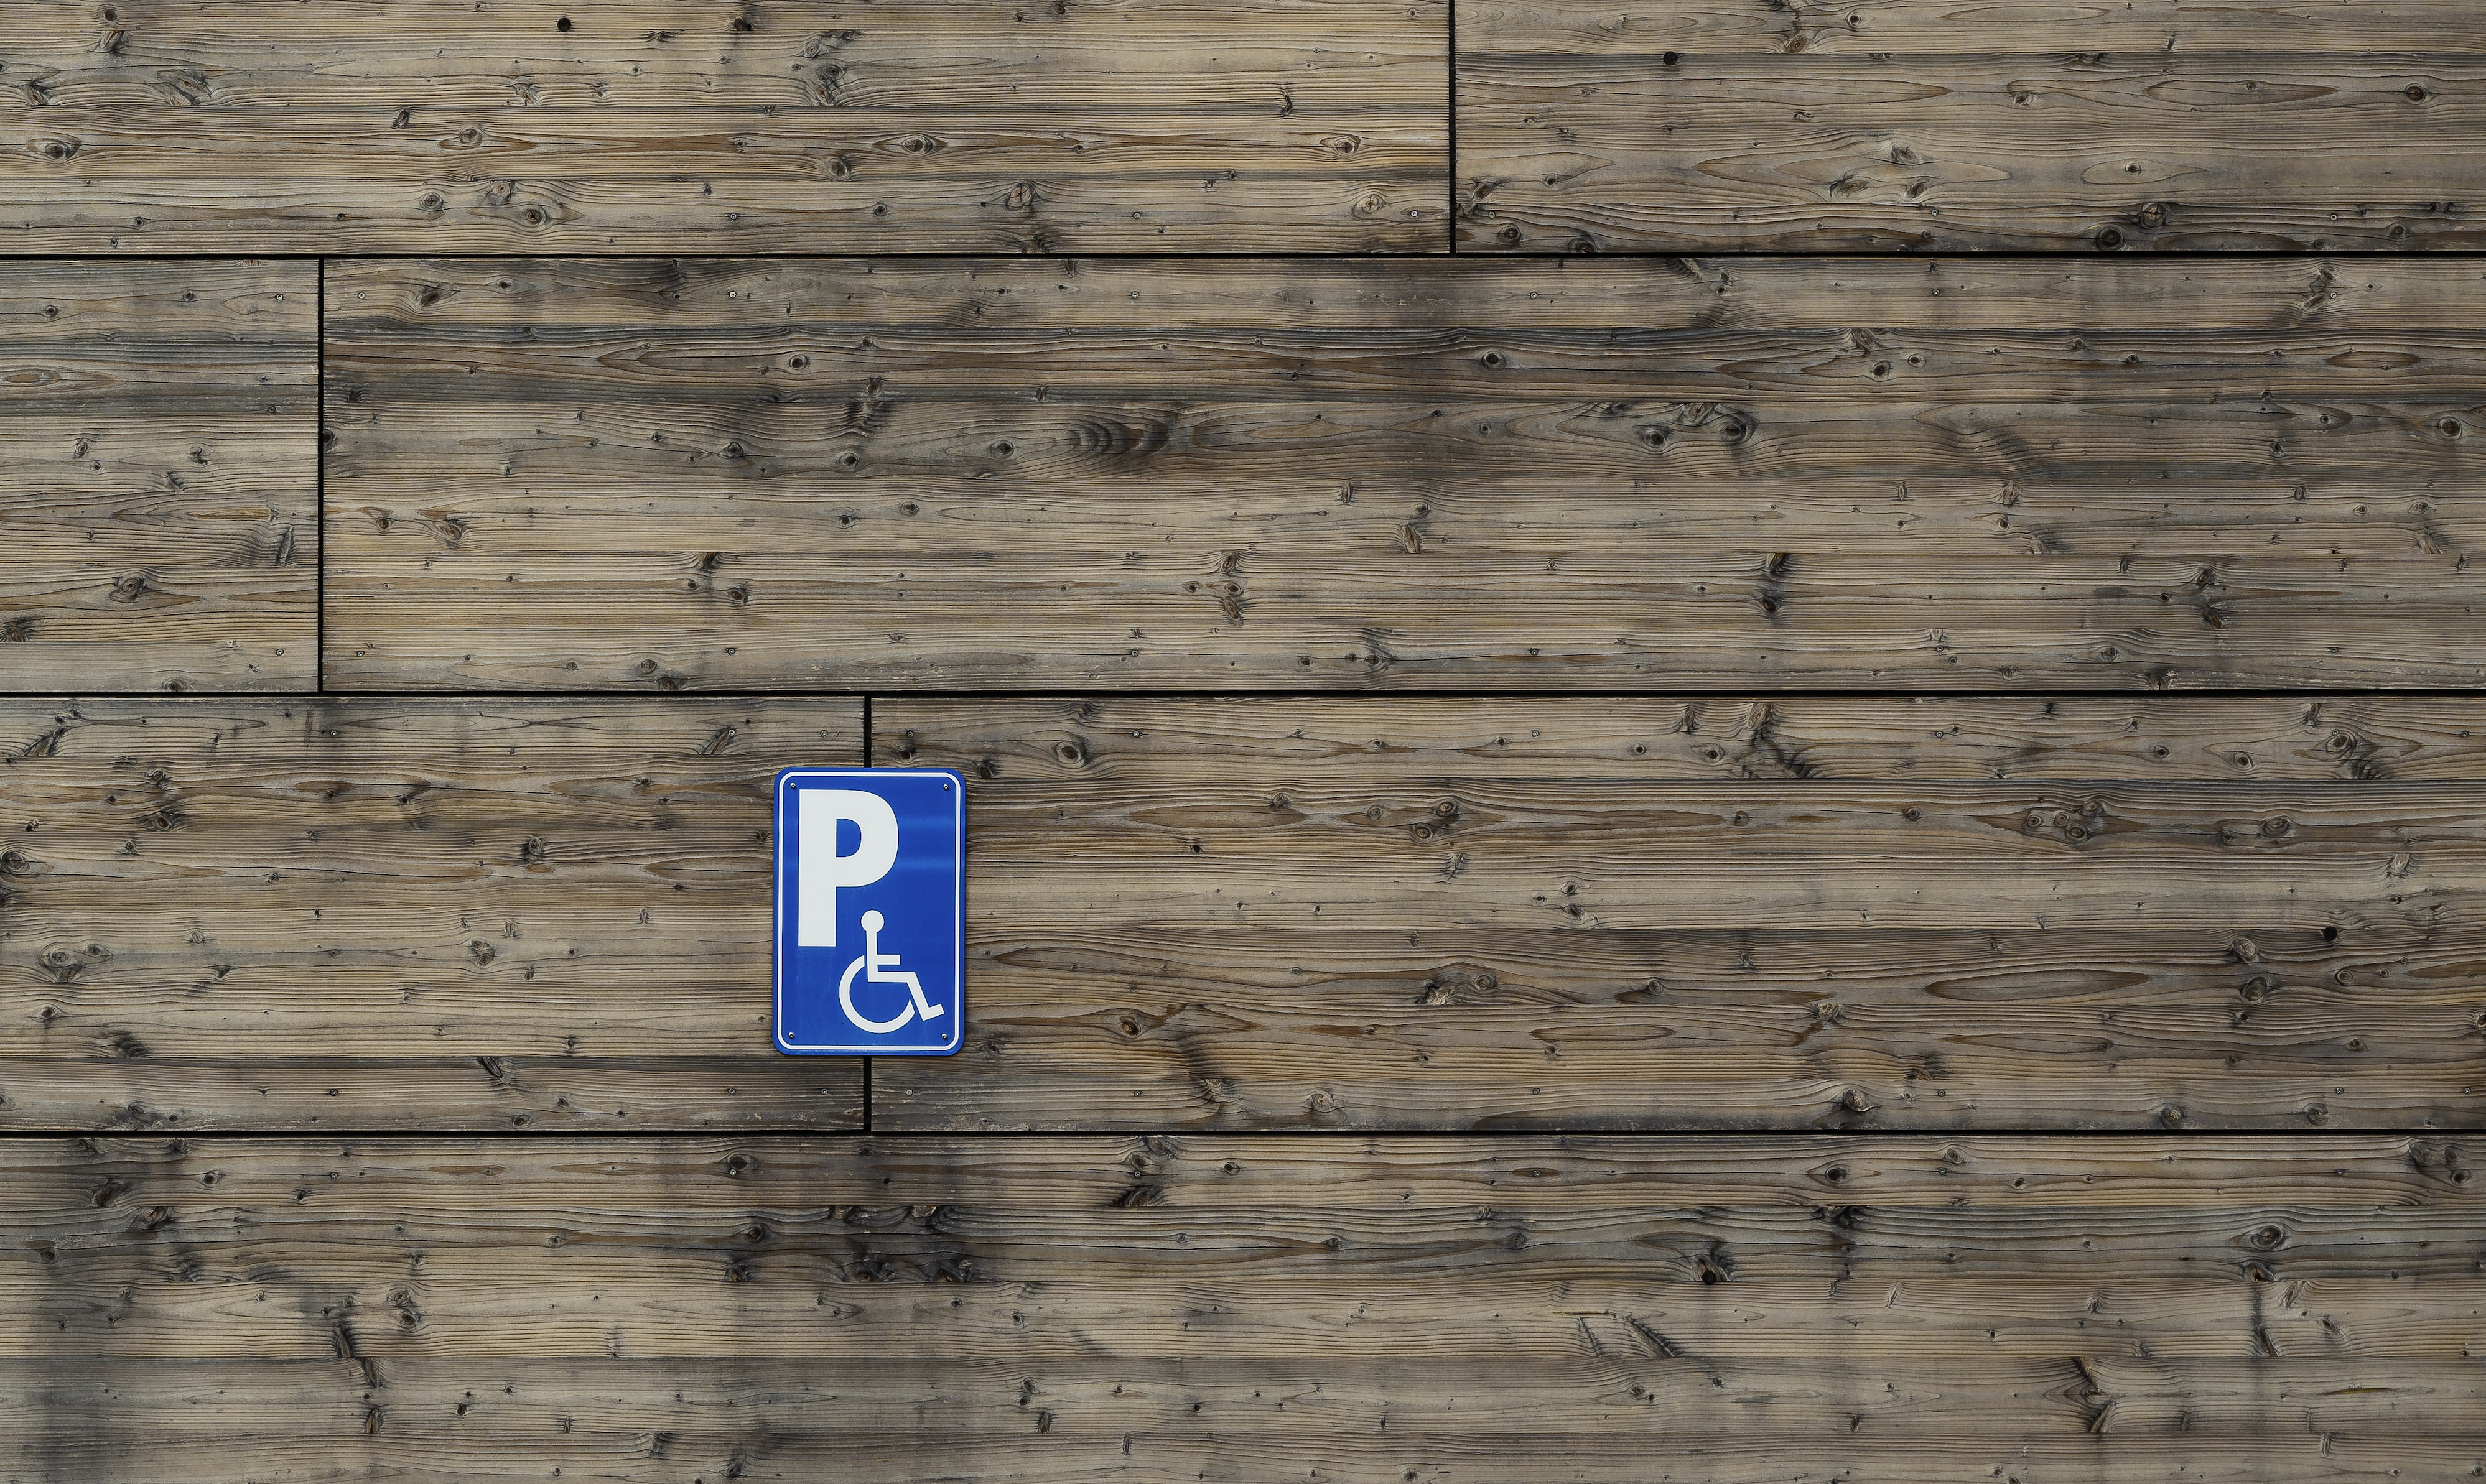 A decorative image for this article showing a disability-parking sign stuck on a wood/timber wall.